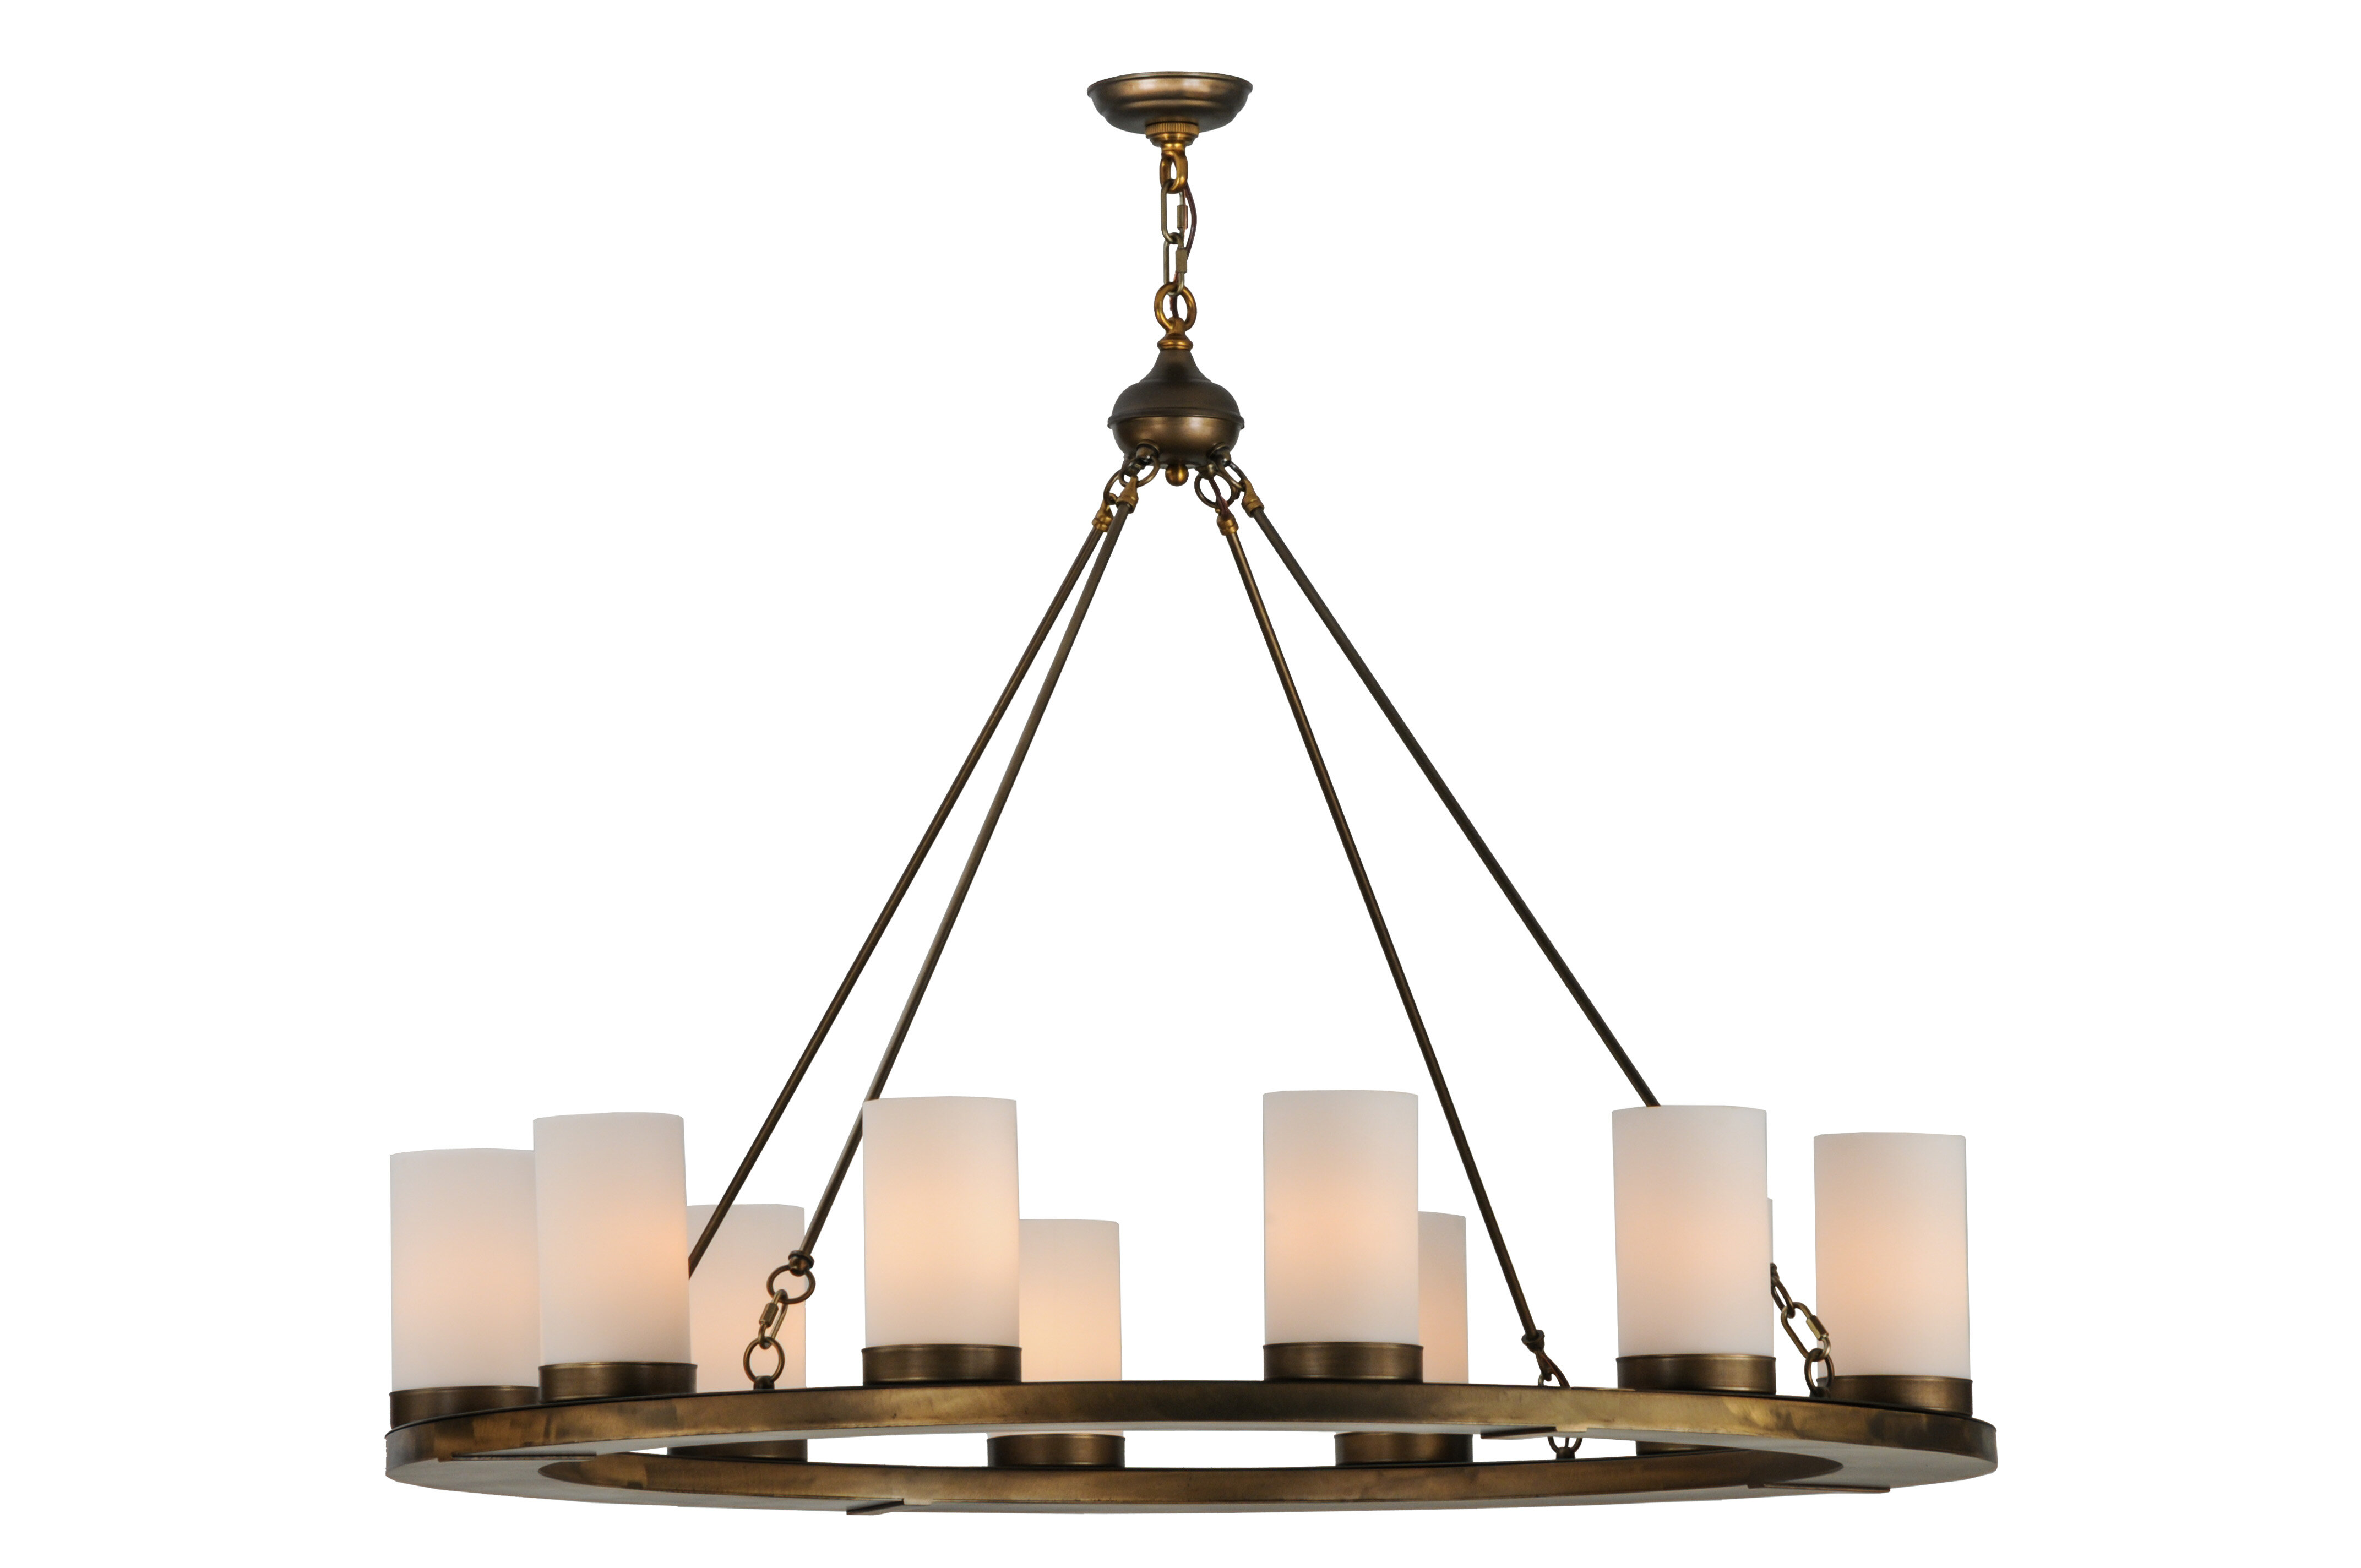 Meyda Tiffany 12 Light Unique Statement Wagon Wheel Chandelier Wayfair